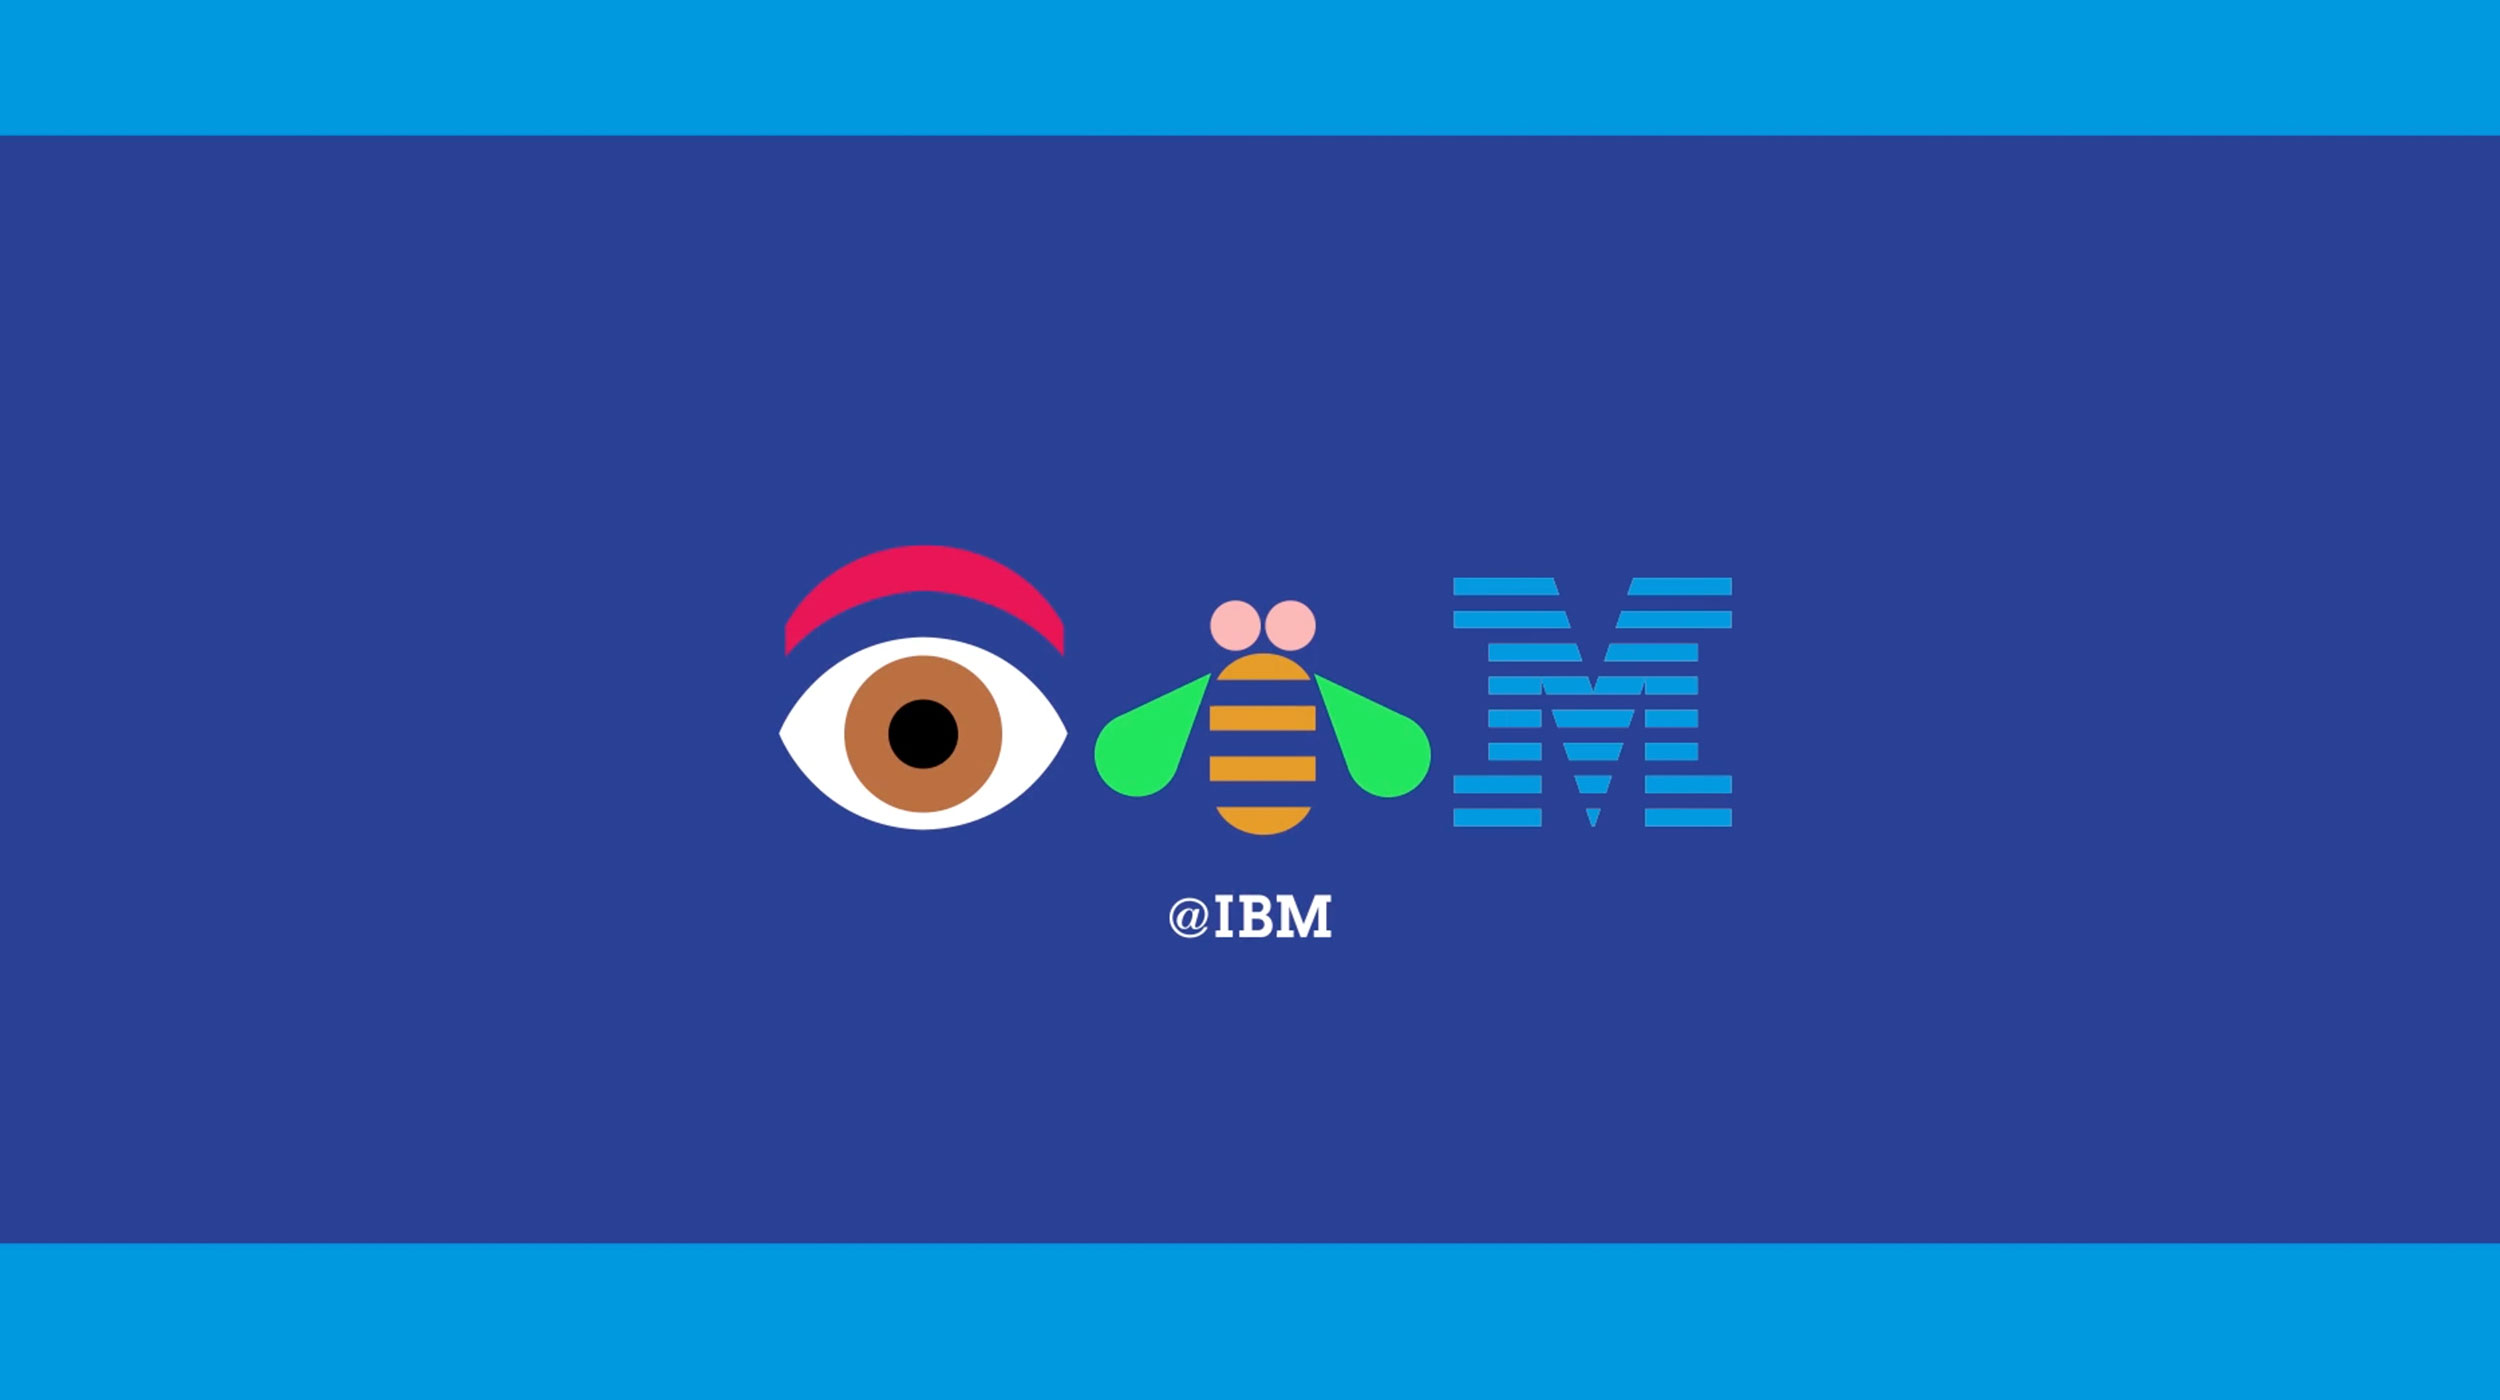 IBM Smarter planet campaign animation – Pixonal – Buck project